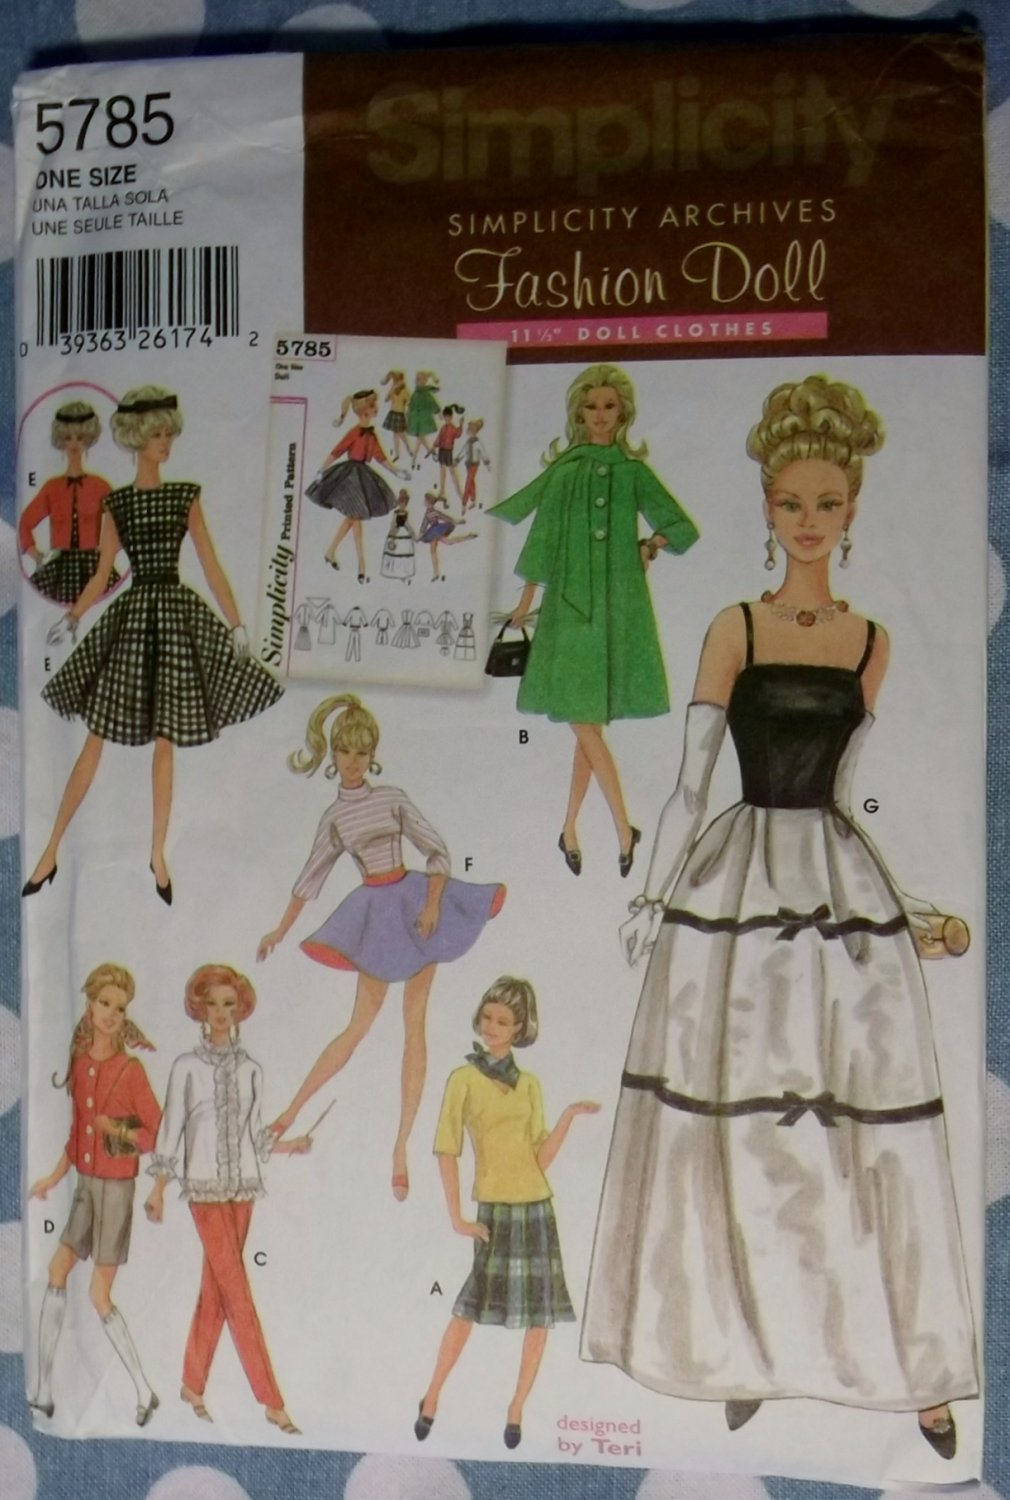 """Simplicity Archives Collection, by Teri Doll Wardrobe Simplicity 5785 Pattern, 11 1/2"""", Uncut"""